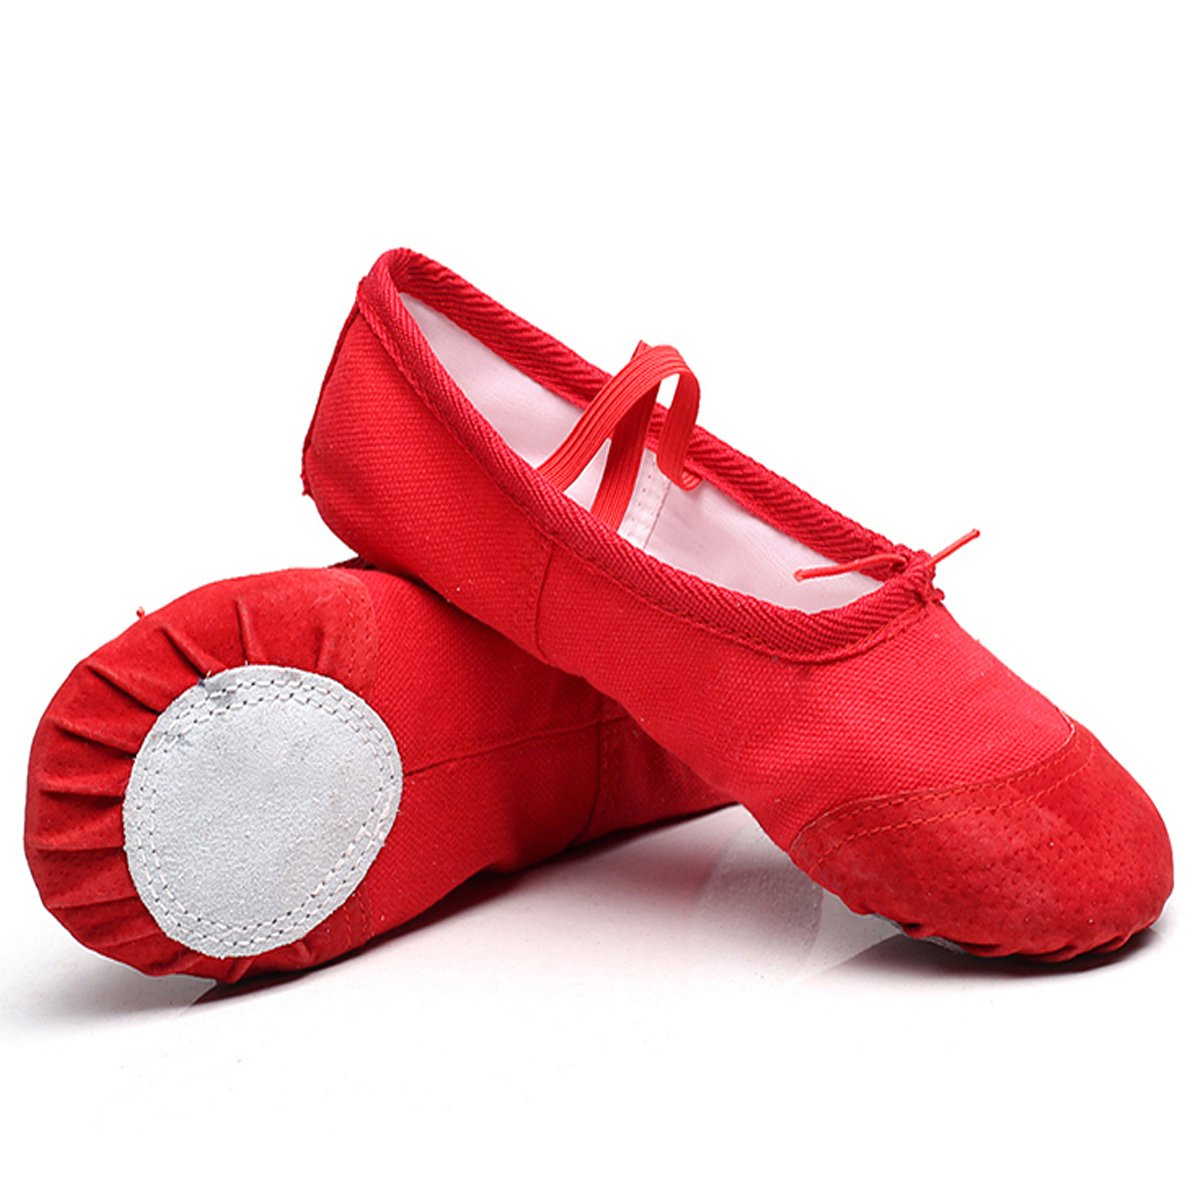 Lovewhitewolf Ballet Slippers Classic Split-Sole Canvas Dance Gymnastics Yoga Shoes Flats Toddler/Kid